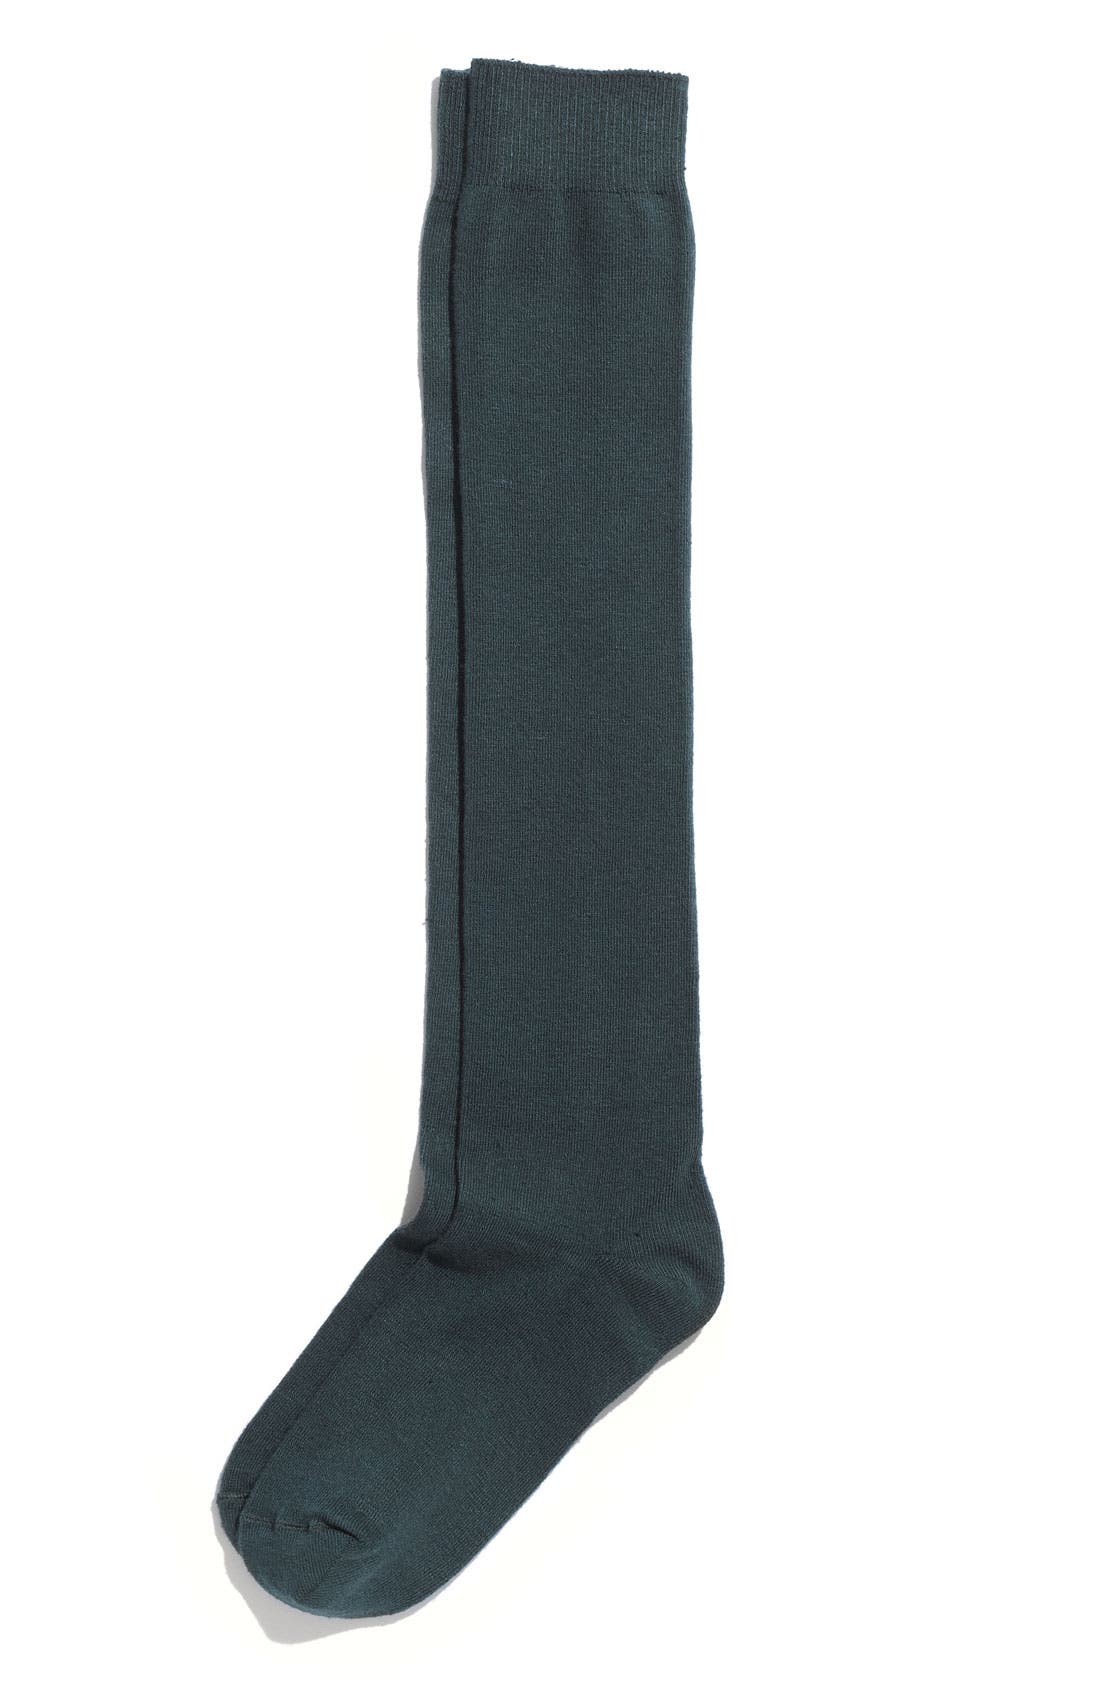 Main Image - Hue Flat Knit Knee Socks (3 for $21)